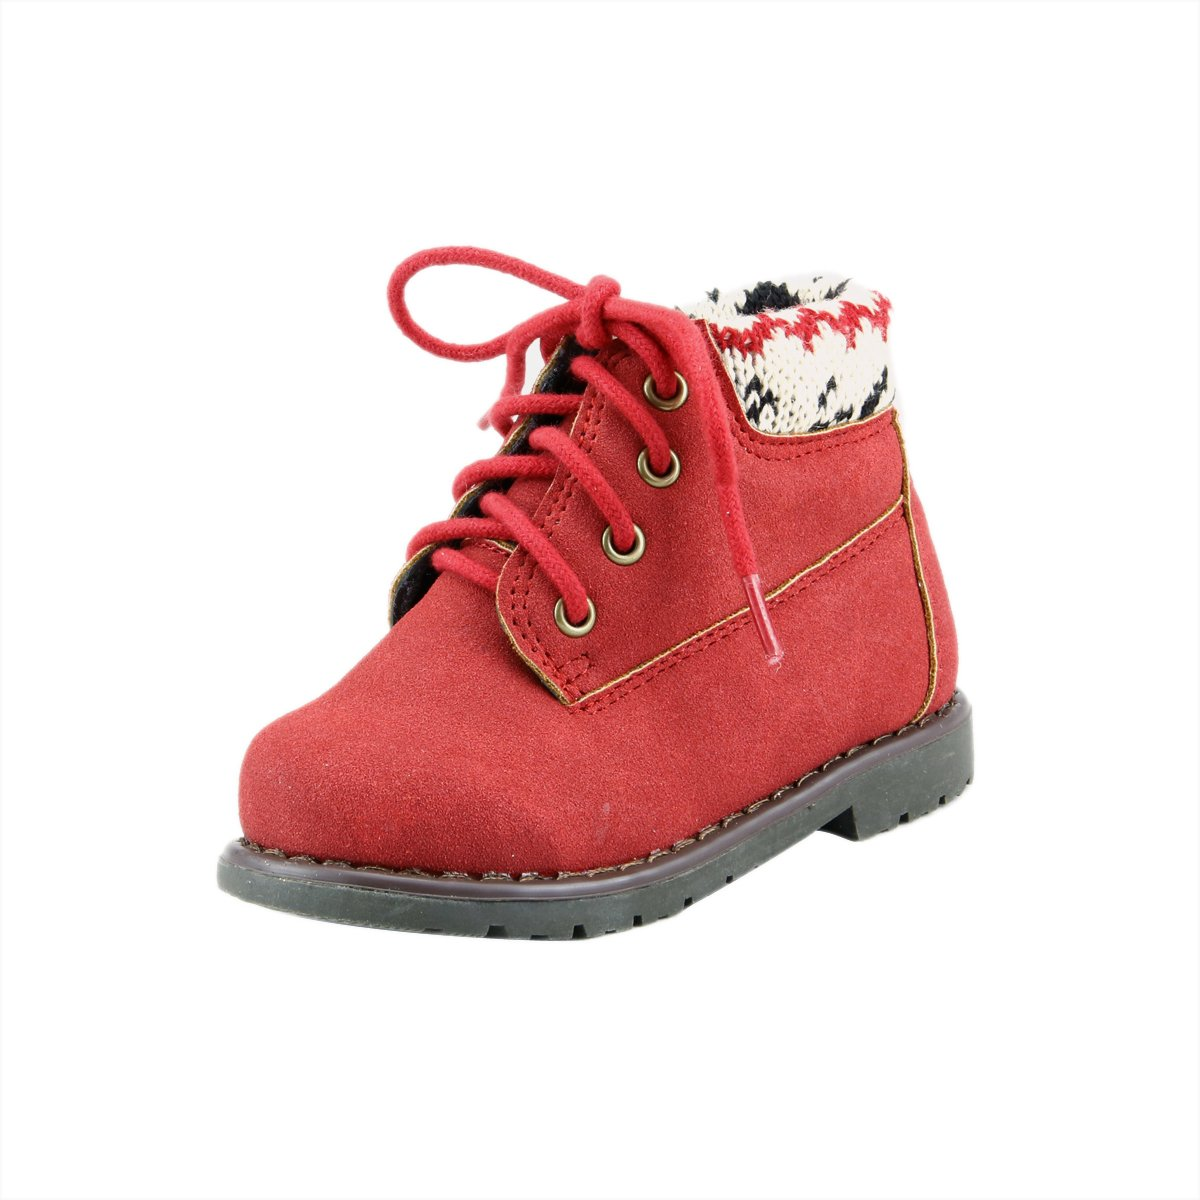 Cool Unisex Baby Boys Girls Winter Ankle Boots Biker Booties Toddler Little Kids 13, Red